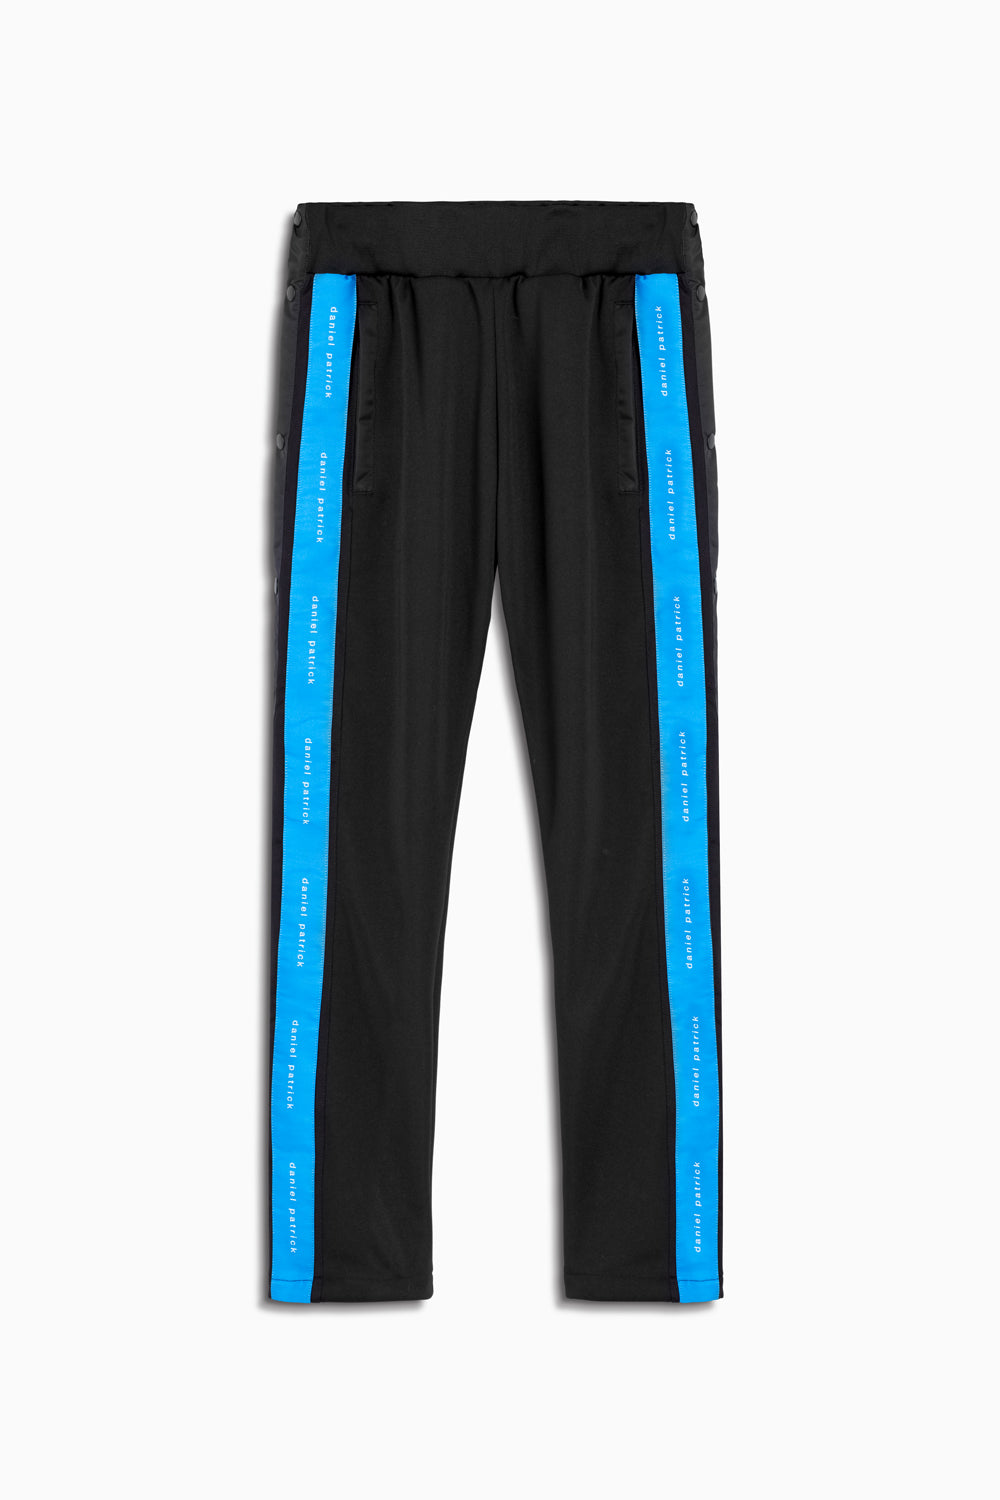 snap track pant in black/cobalt by daniel patrick